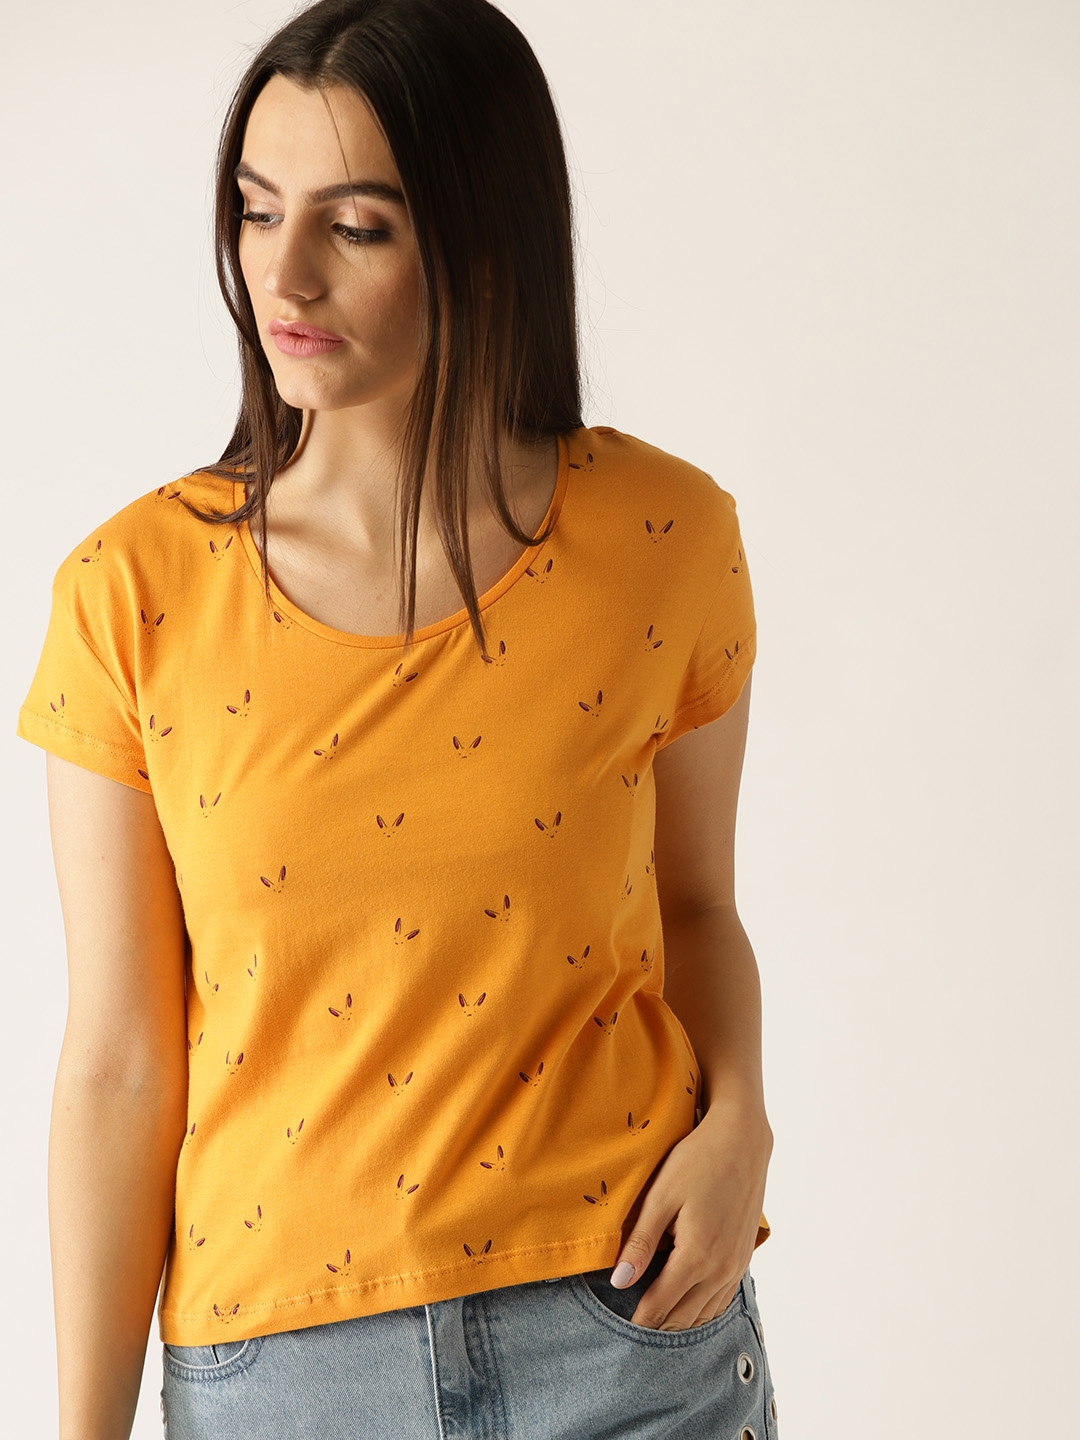 0b19a2ad7a2a United Colors of Benetton Women Mustard Yellow Printed Round Neck T-shirt